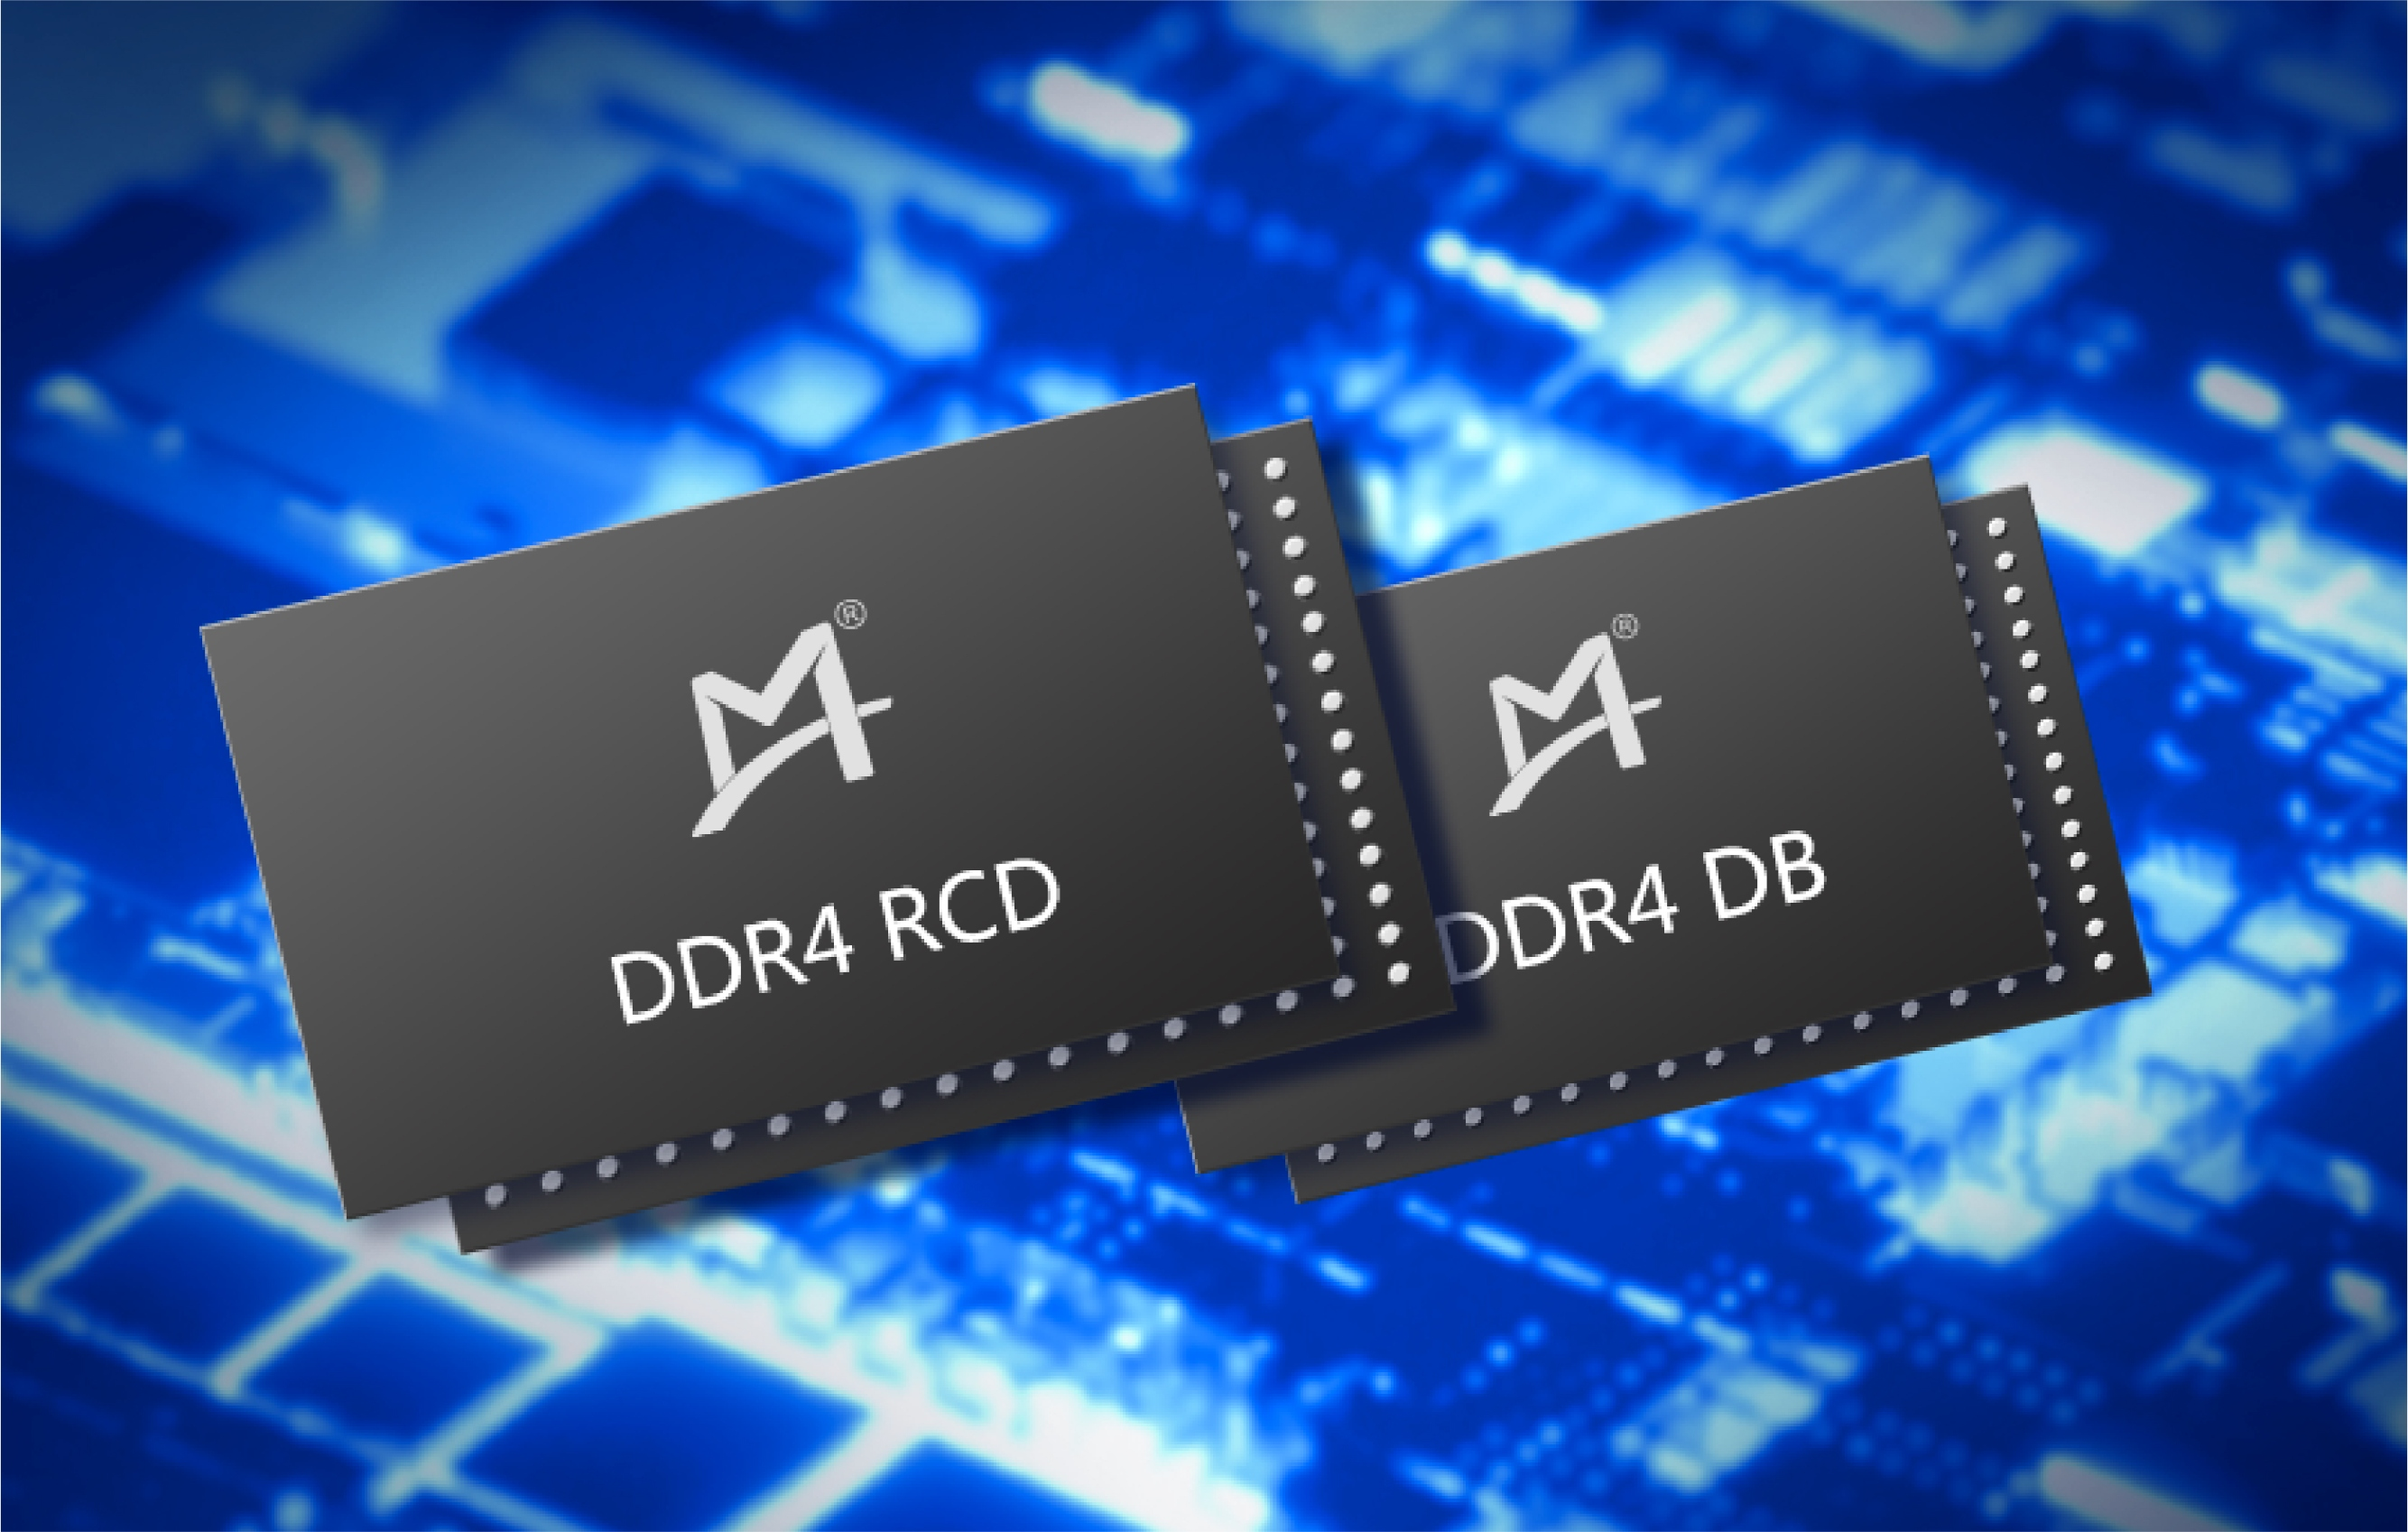 DDR4 RCD and DB